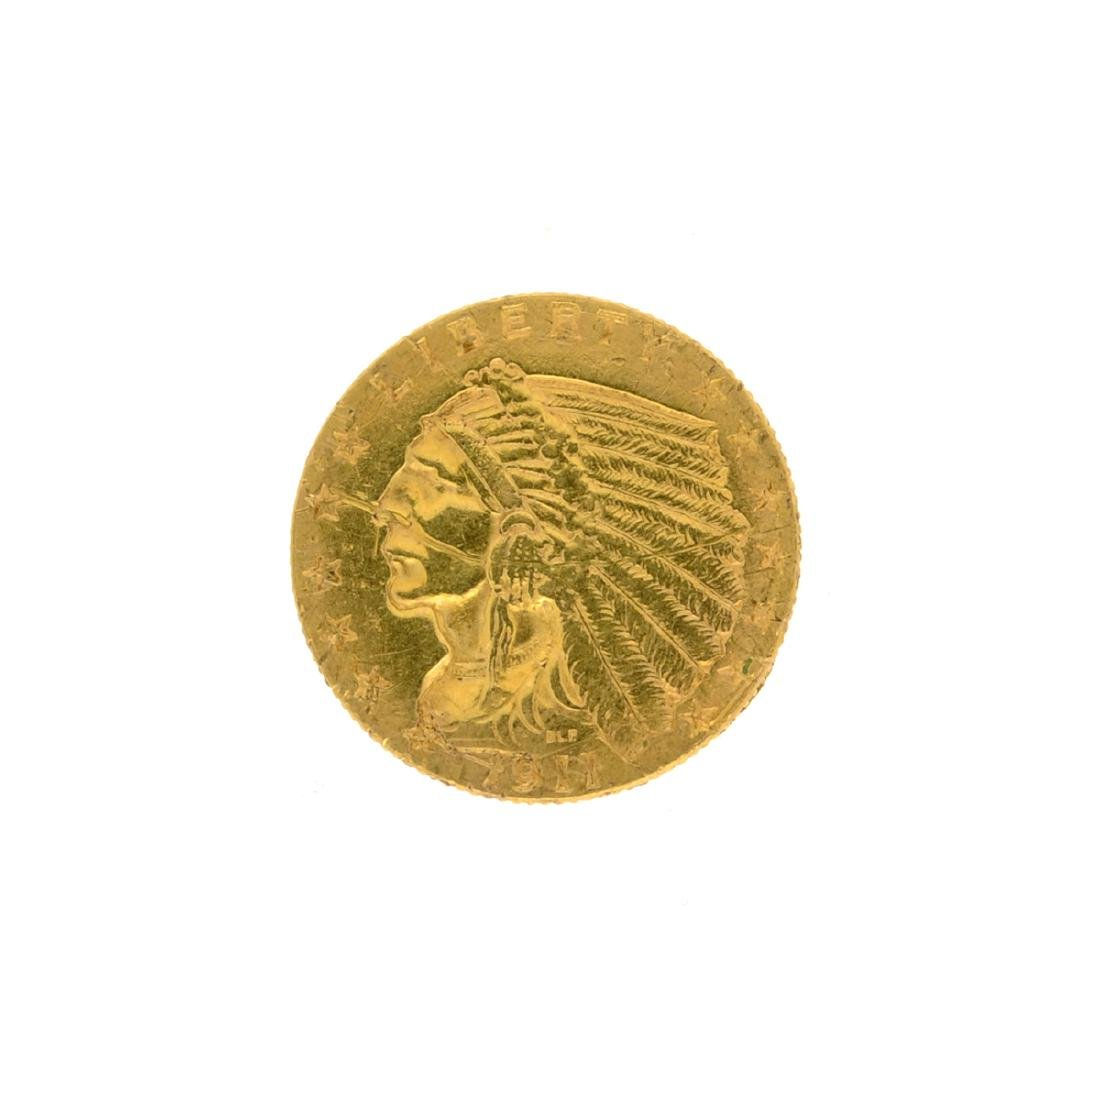 1911 $2.50 U.S. Indian Head Gold Coin